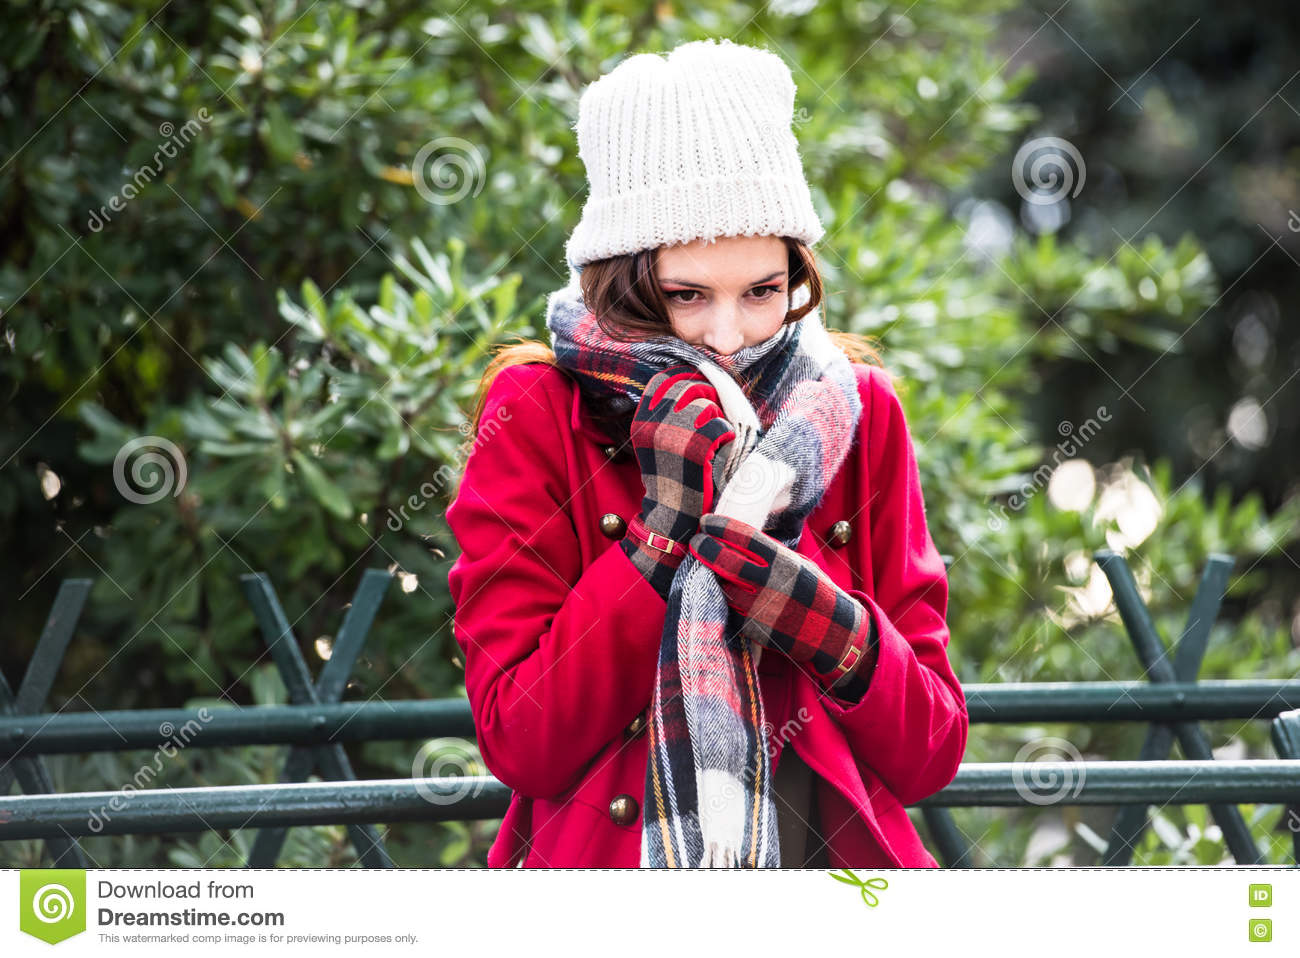 Je suis froid